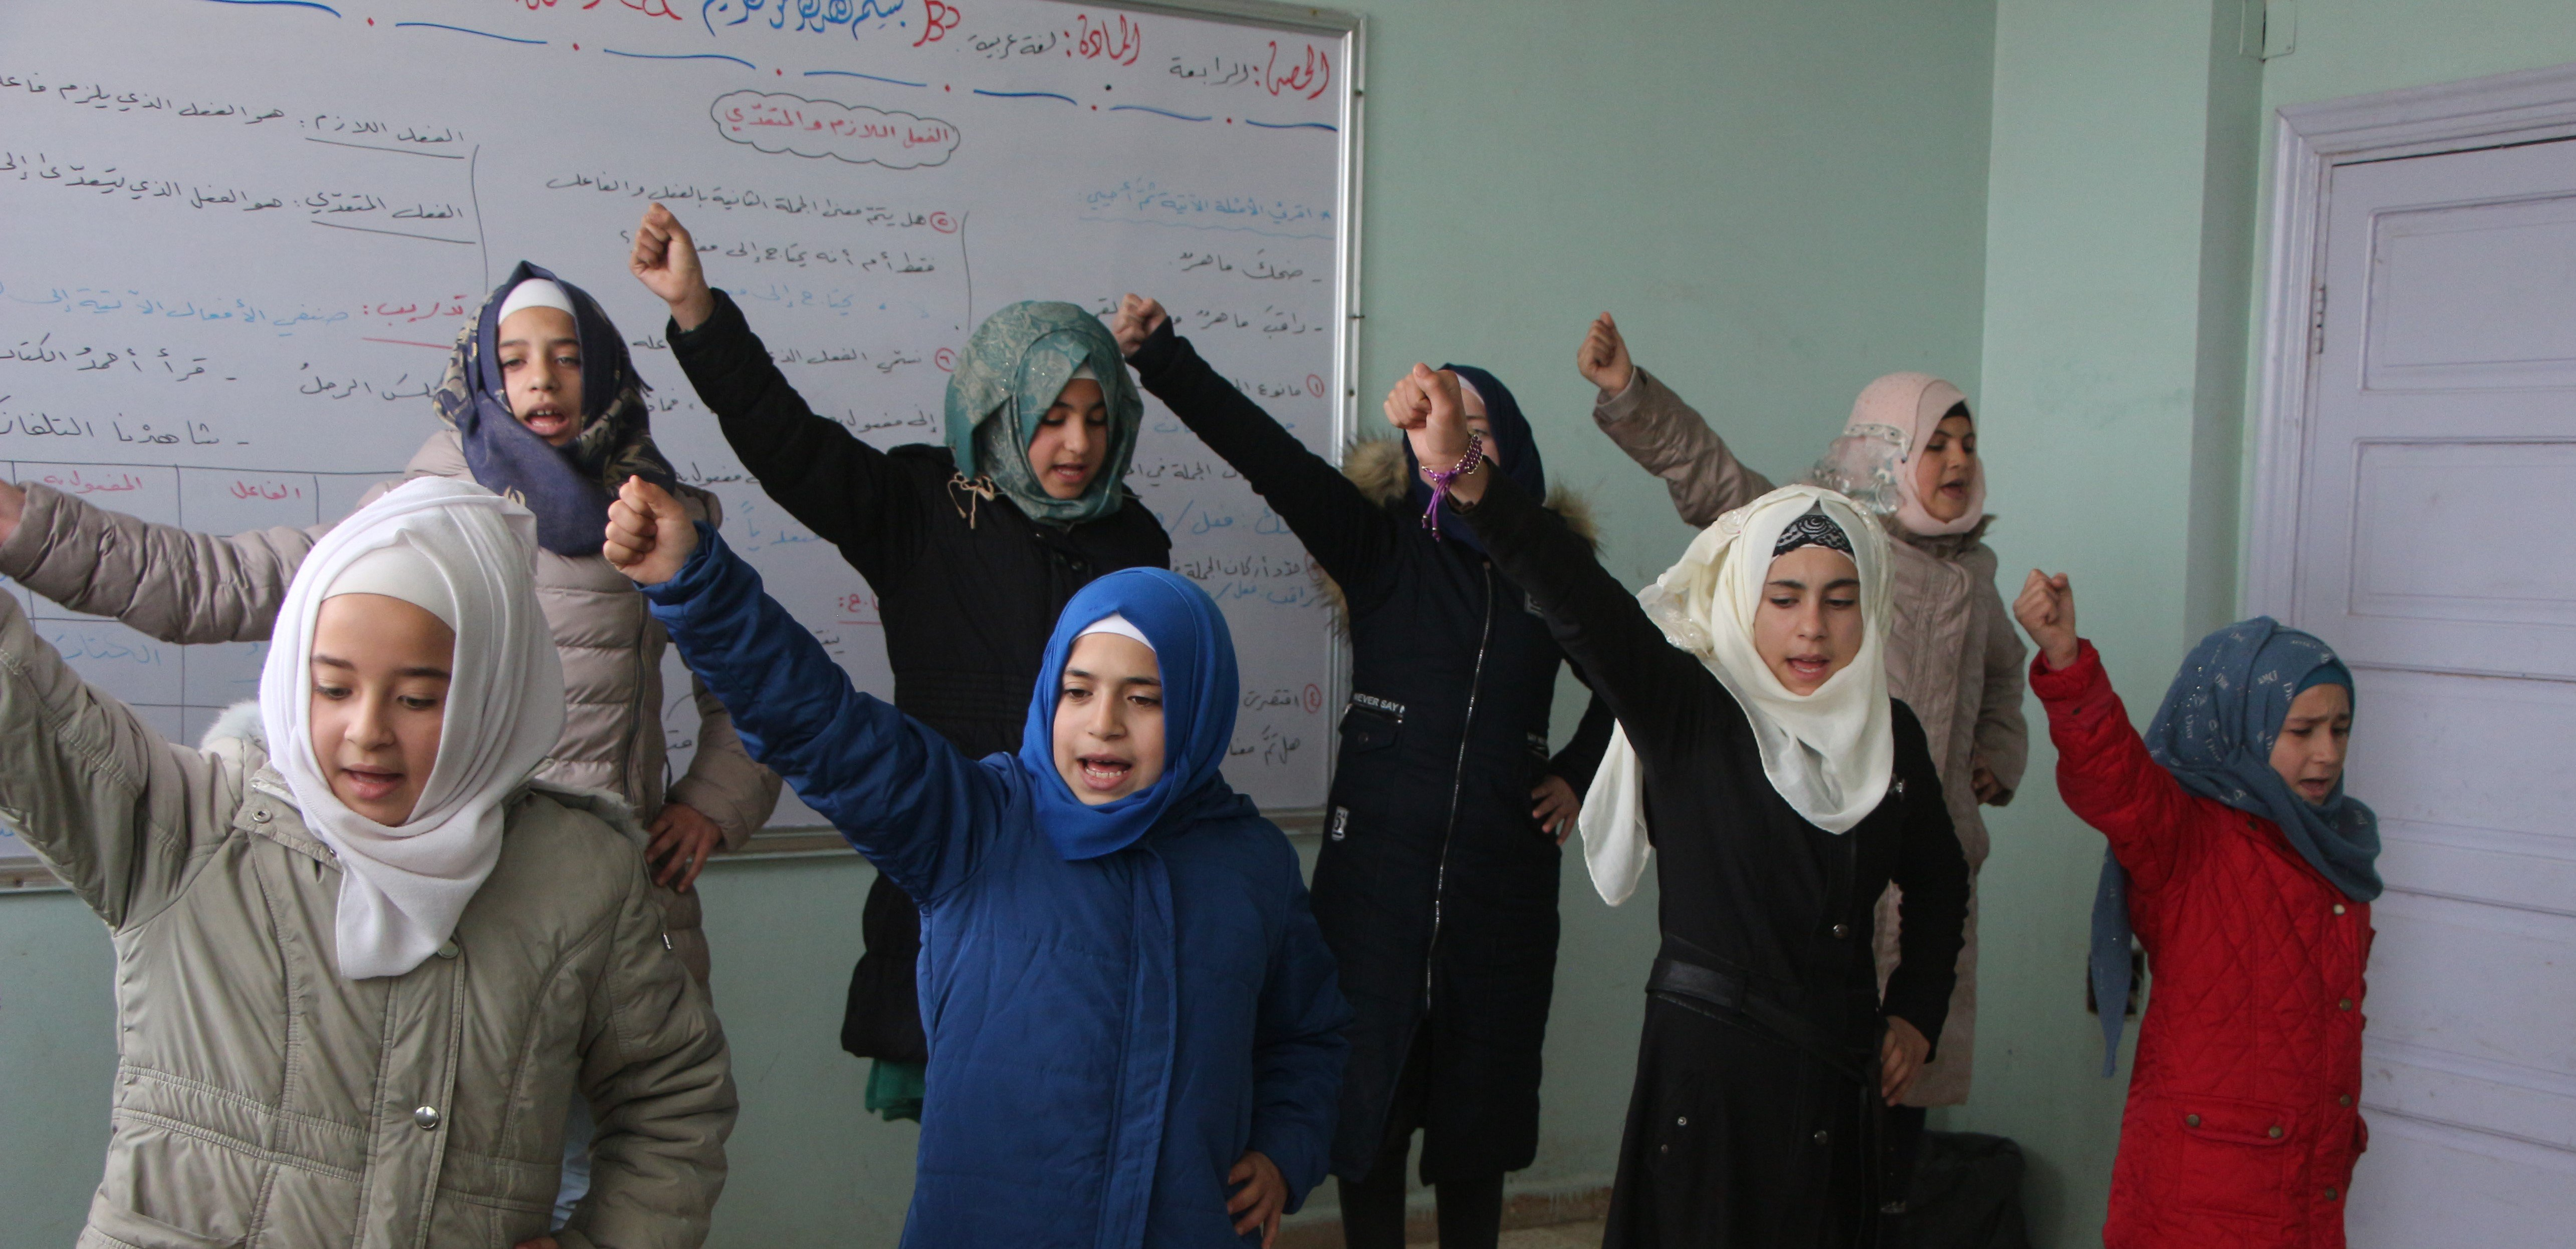 Using education, rhymes, and rhythms to cope with an endless war